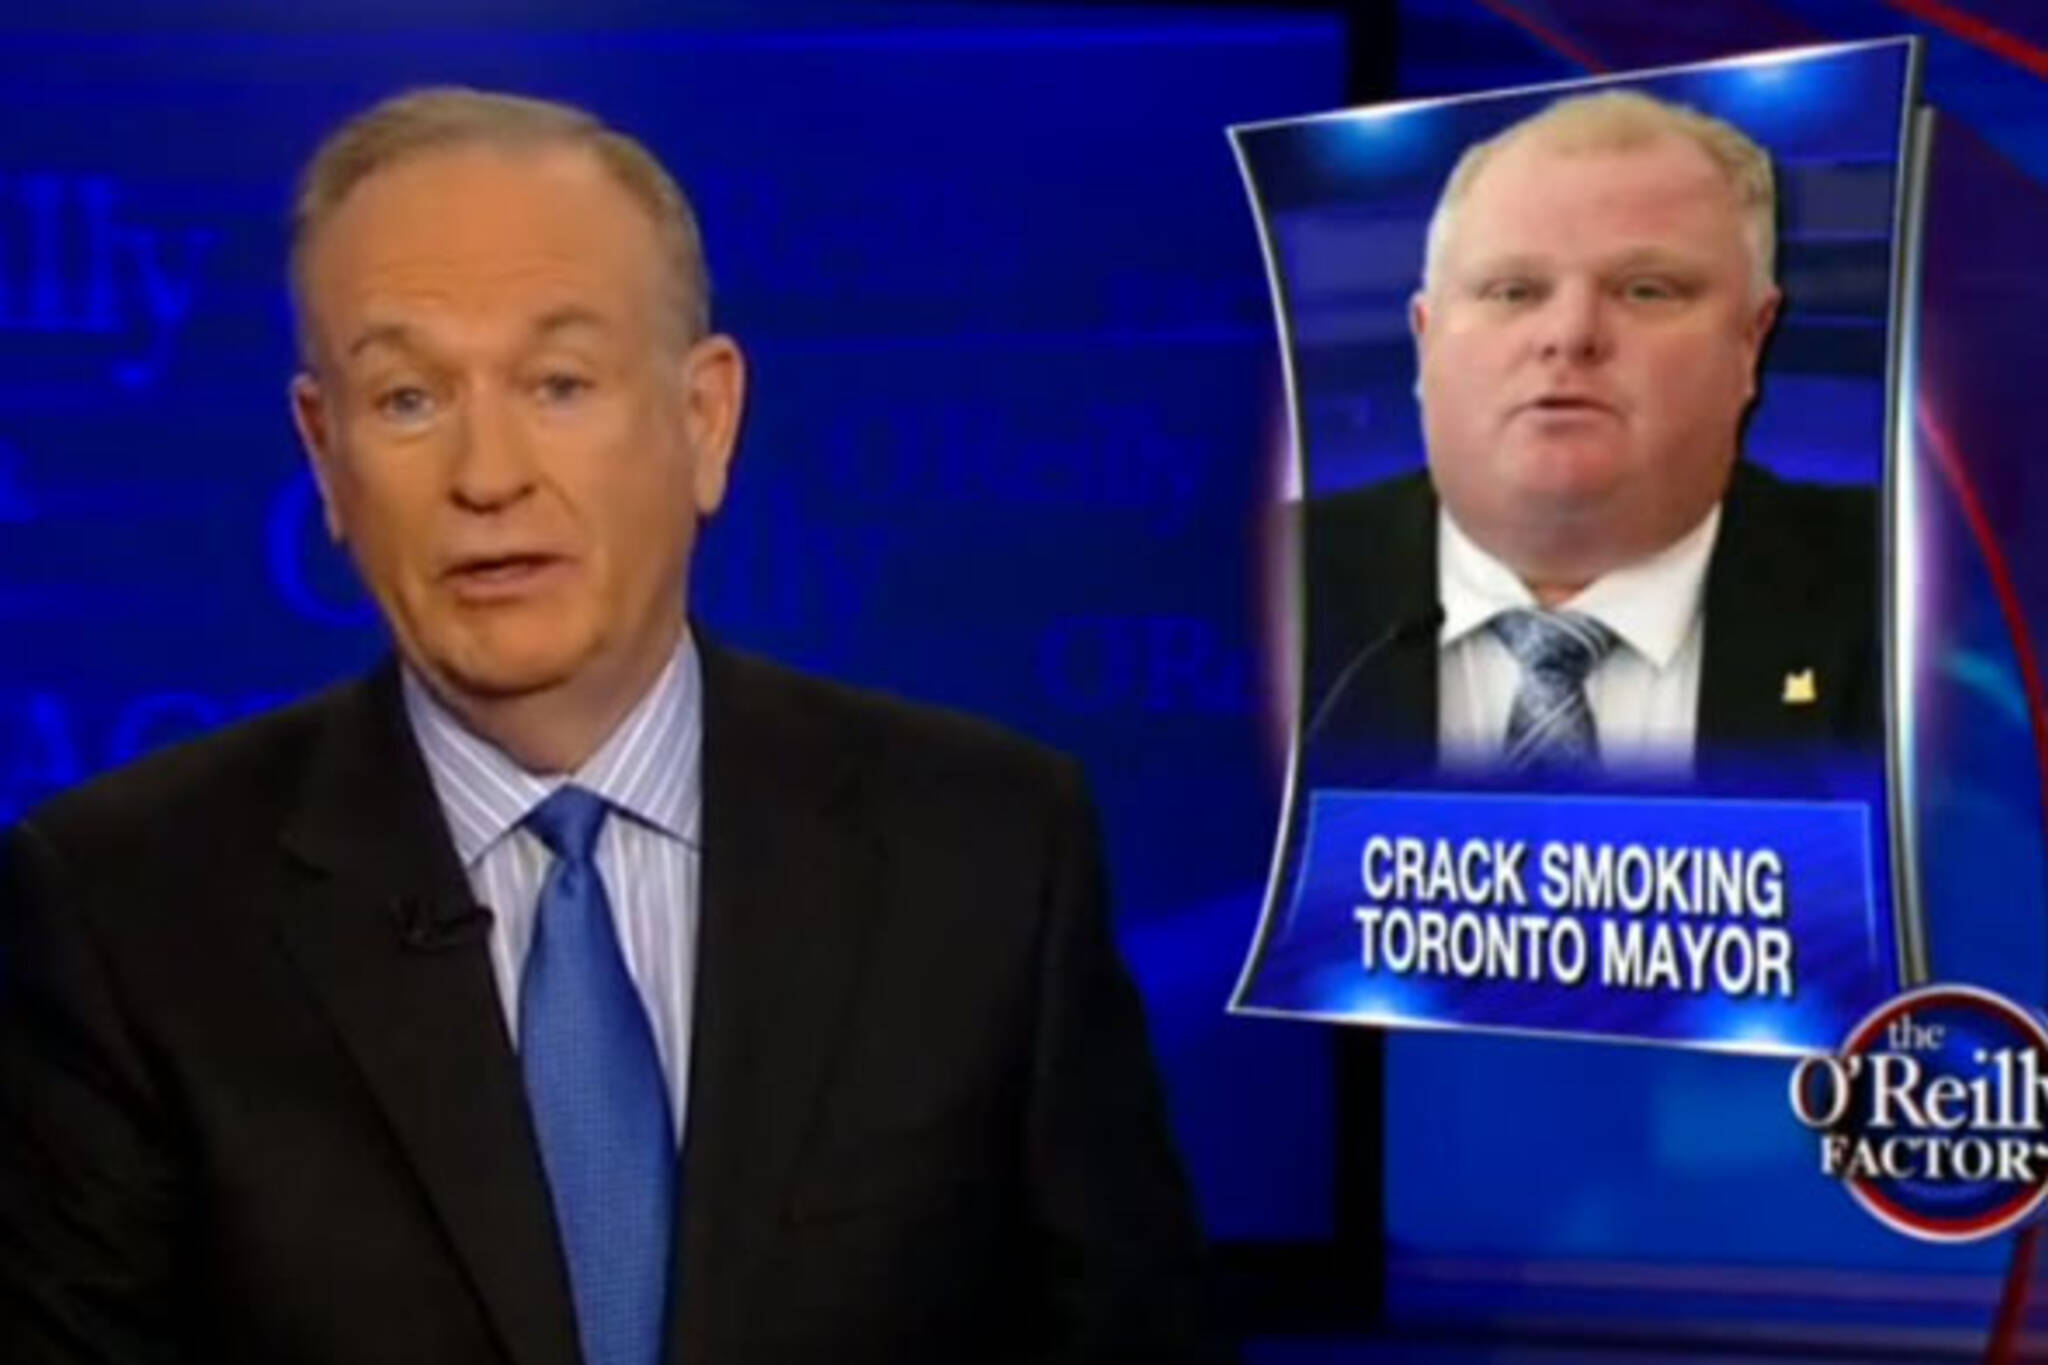 Oreilly Factor rob ford